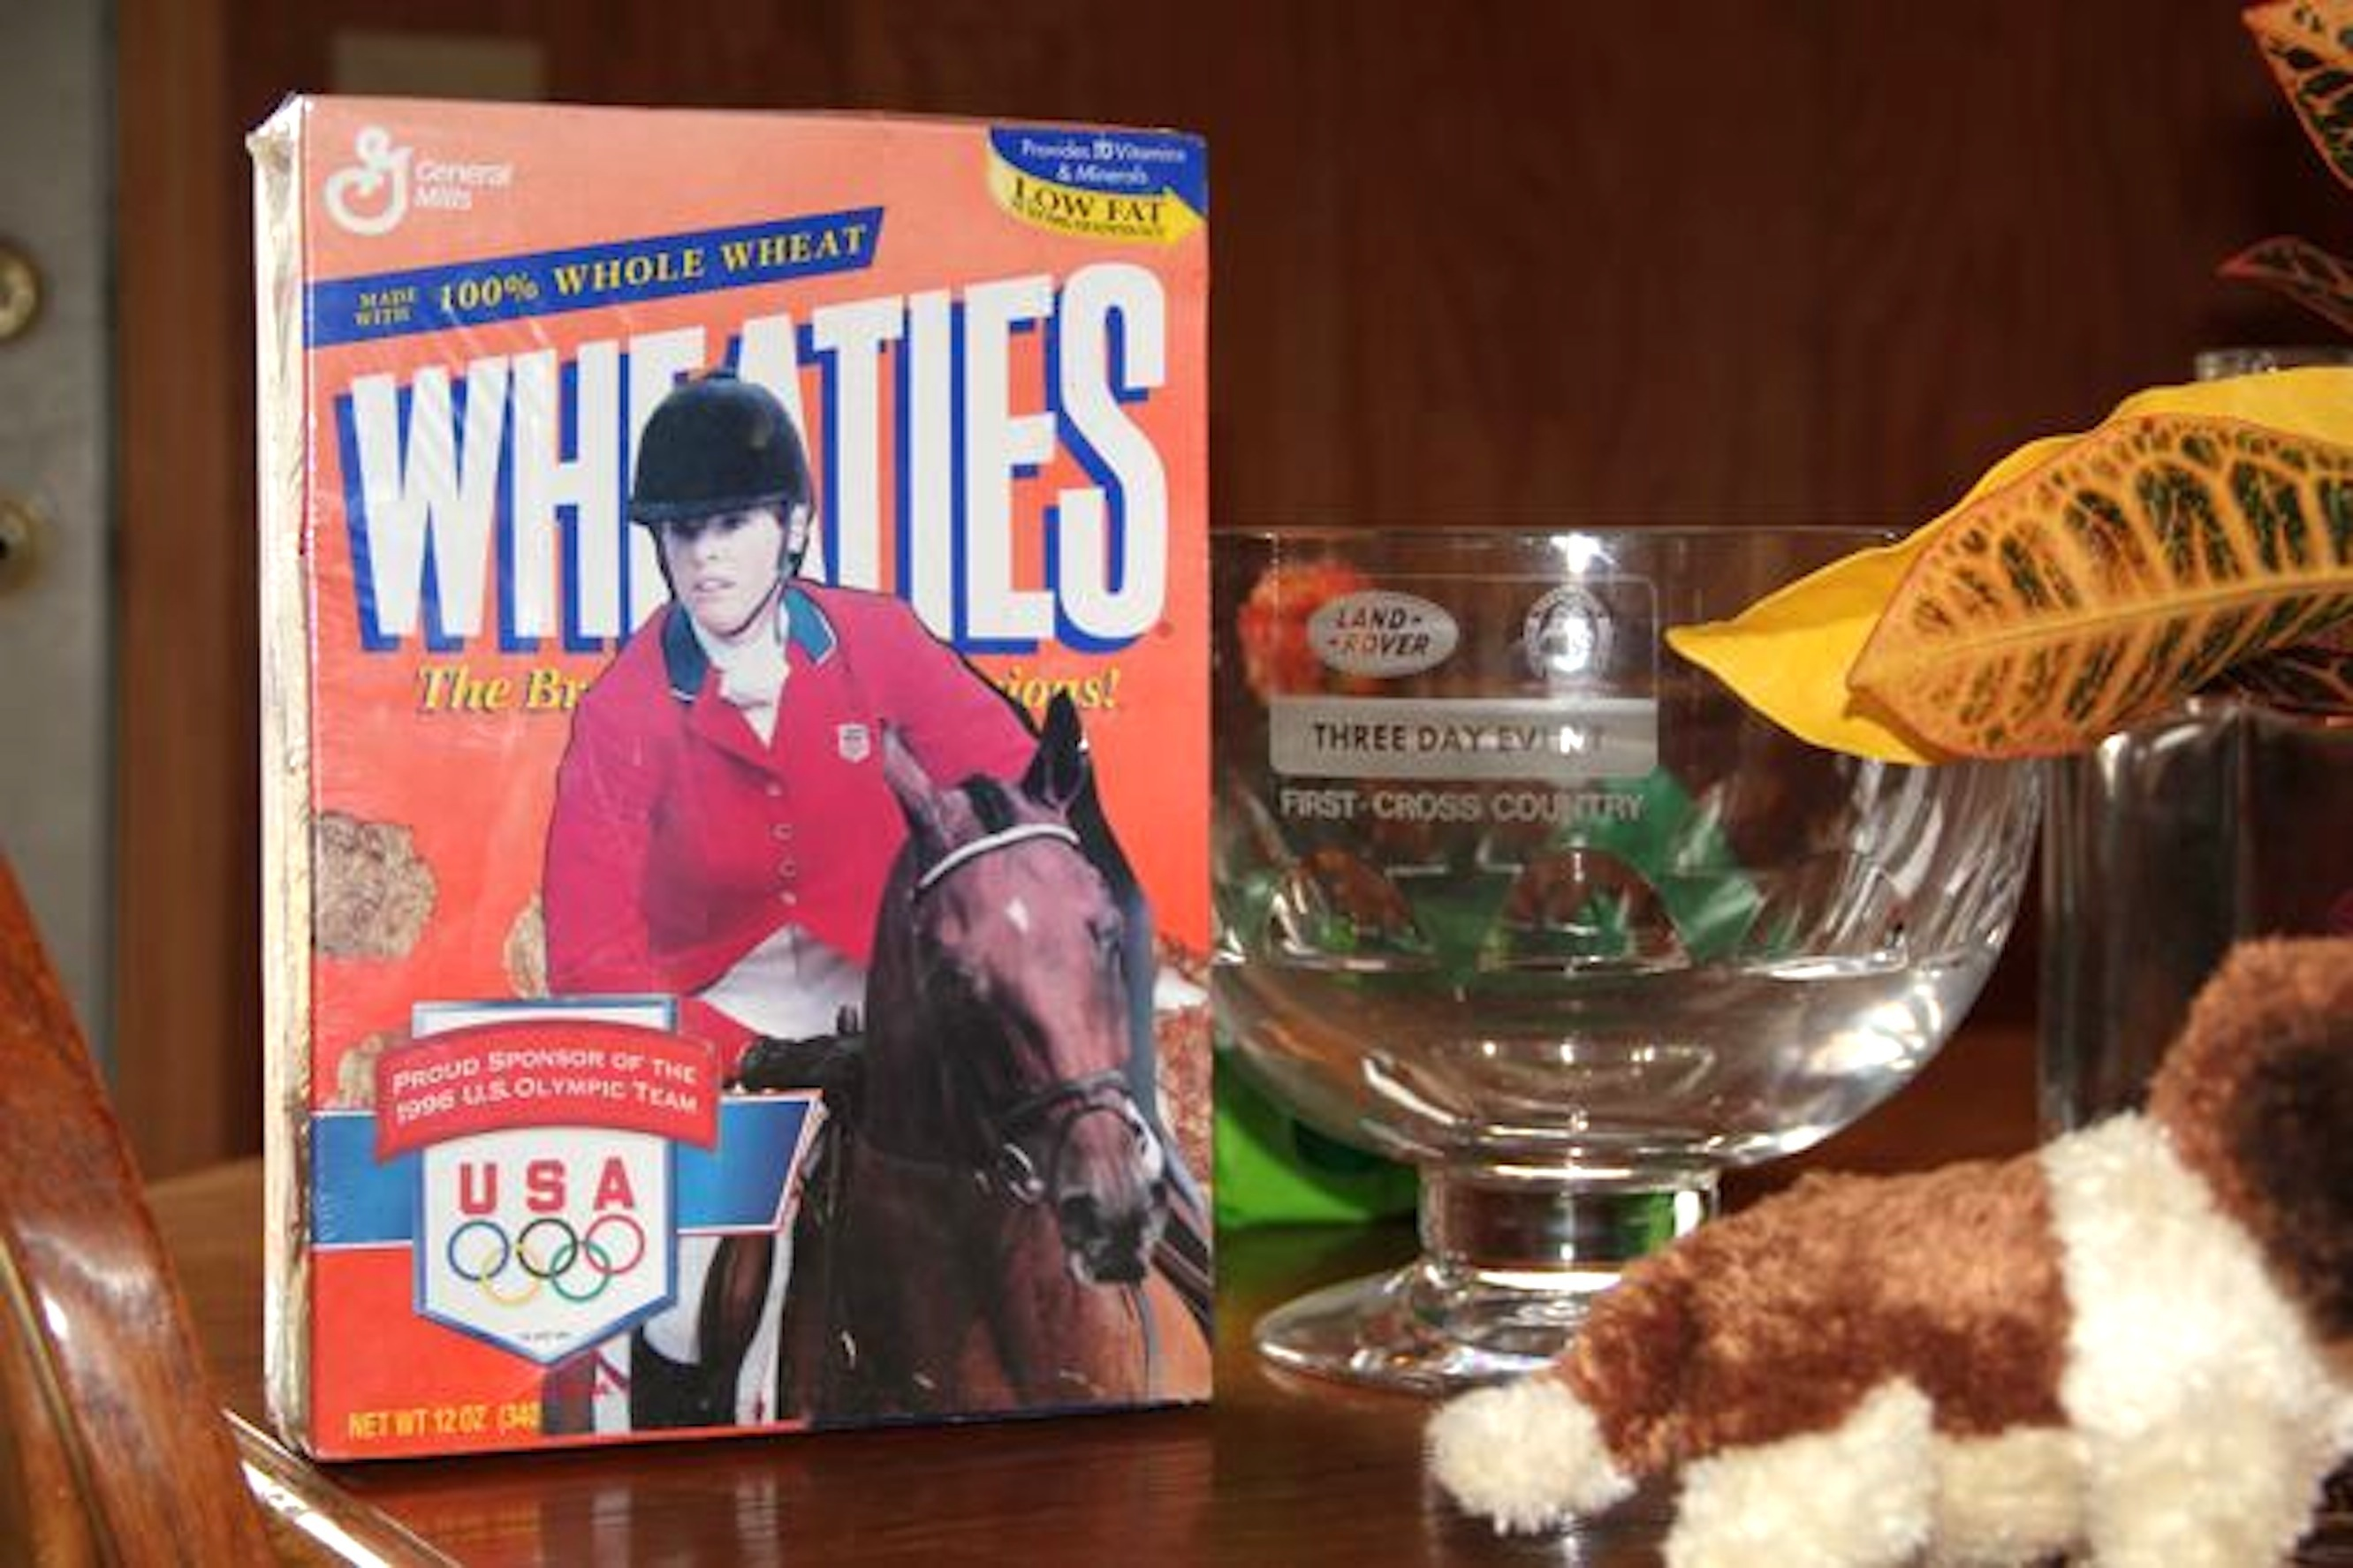 "Dorothy and Molokai: ""The truth is that we were never featured on the Wheaties box,"" stated Dorothy. ""Diana Rich, my really good friend and an event rider from Ohio, put it all together, using a real box with the Olympic symbol on it. She cut out and pasted our photo on there, made it look real, then shrink-wrapped it for me."" (Photo courtesy of EventingNation.com and Samantha L. Clark)"